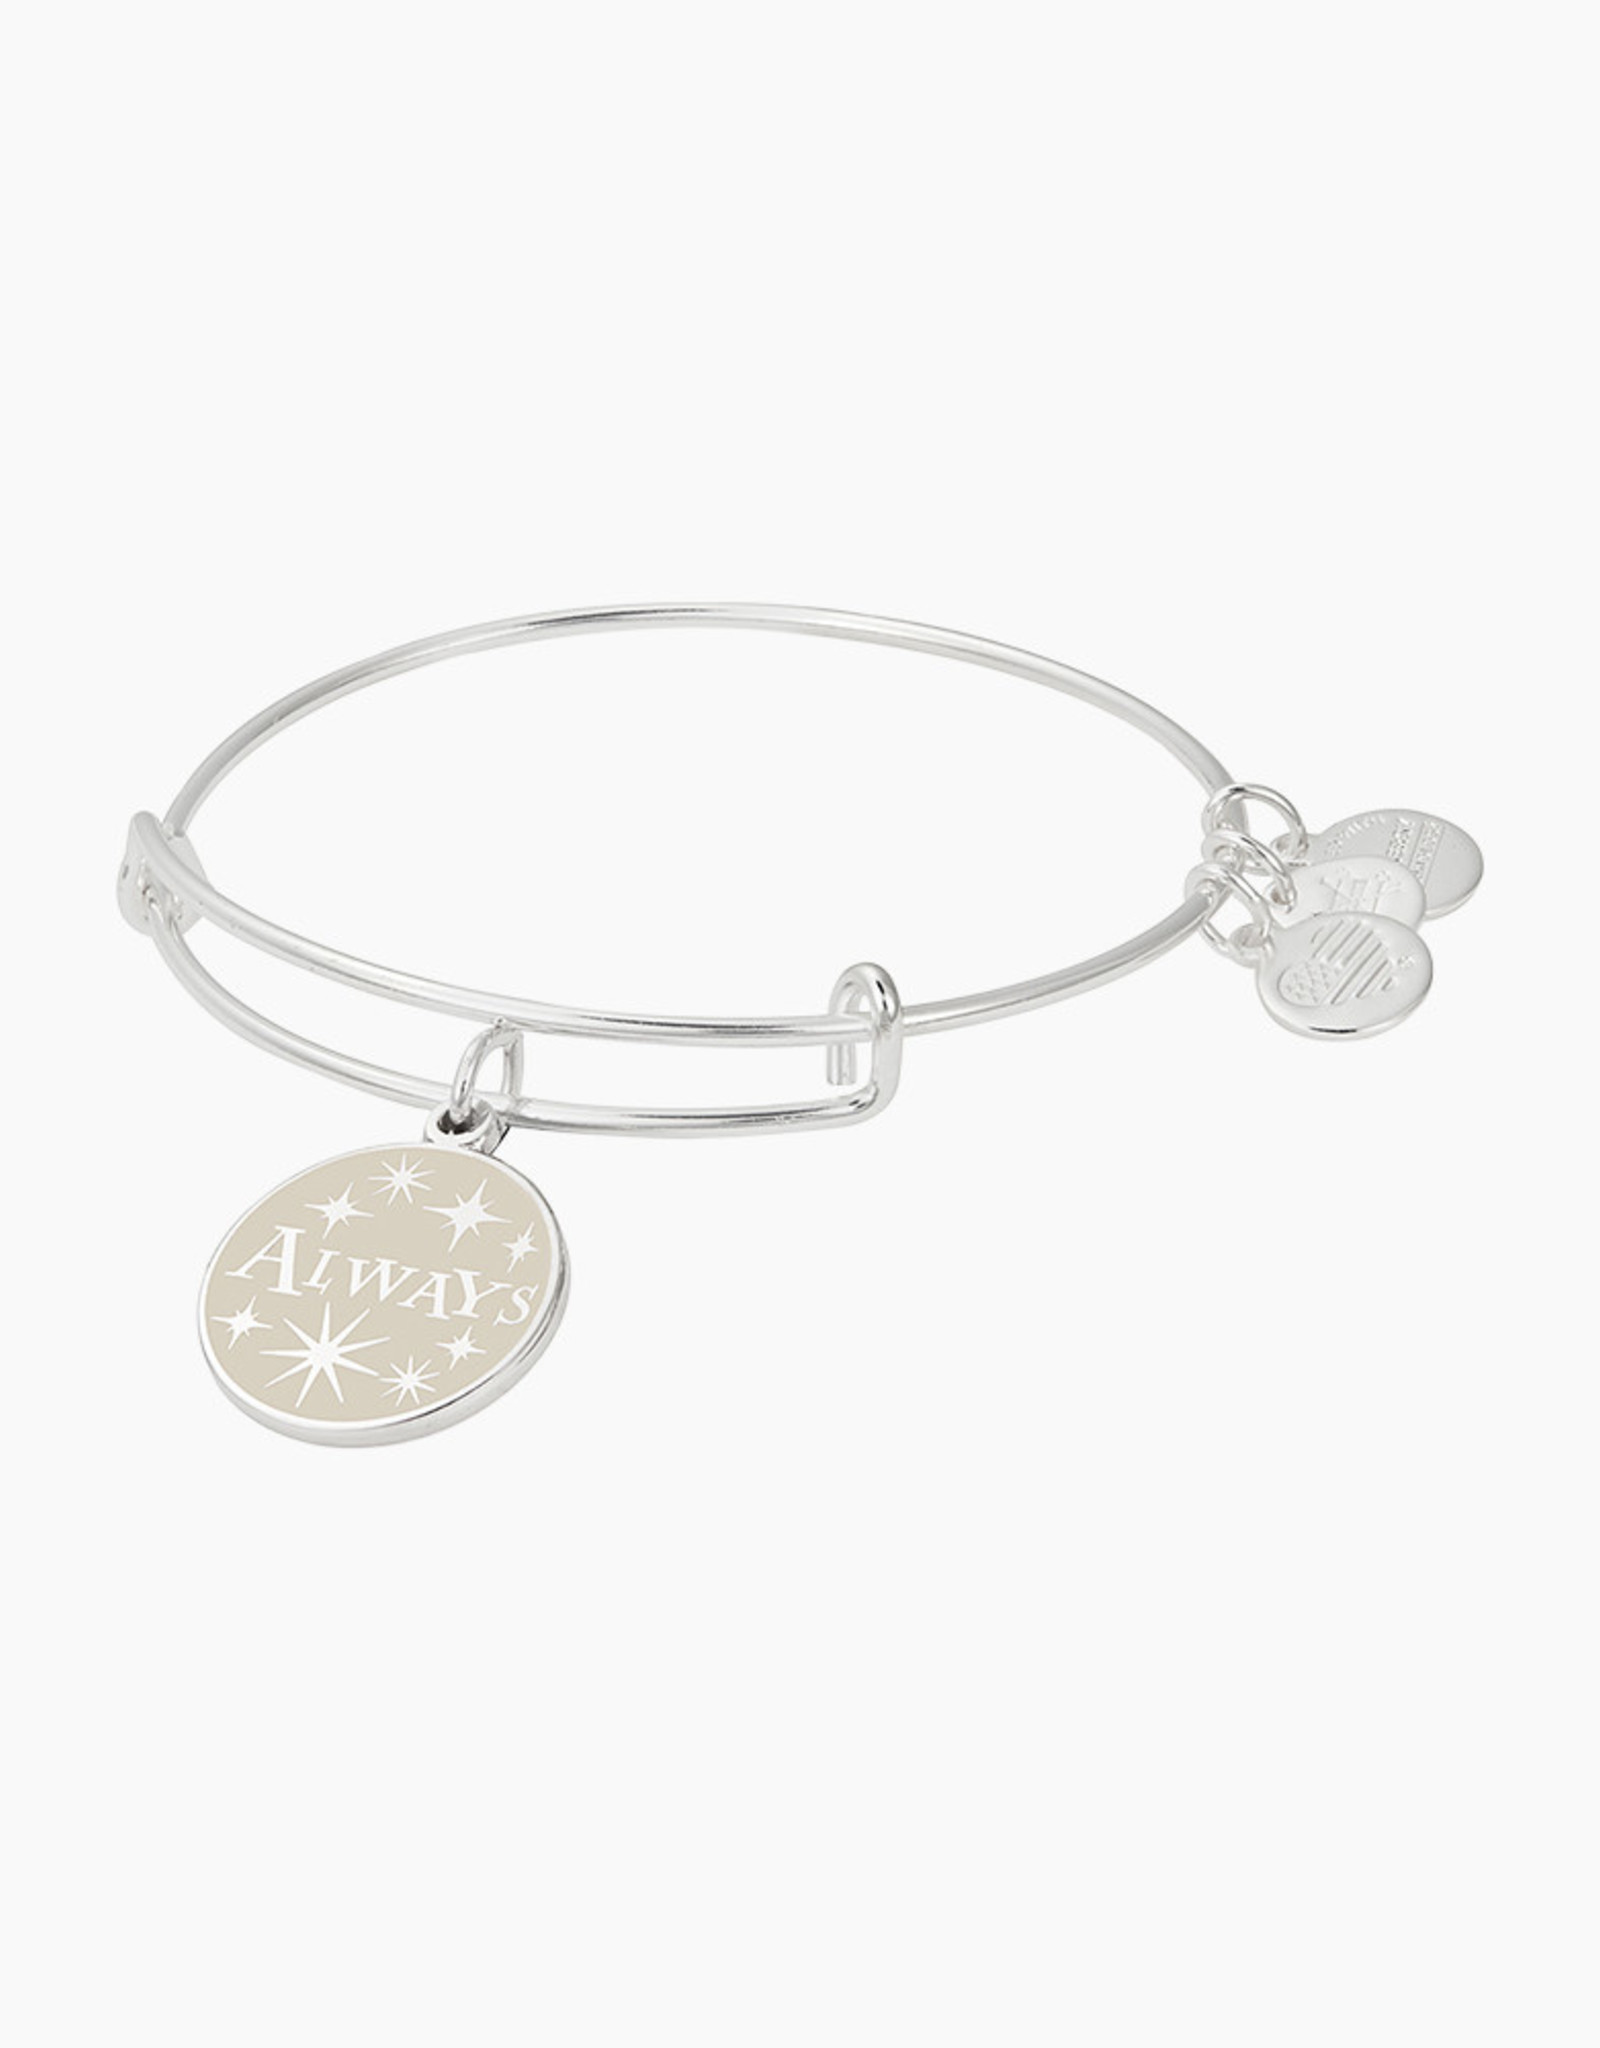 Alex and Ani Harry Potter, Always, SS